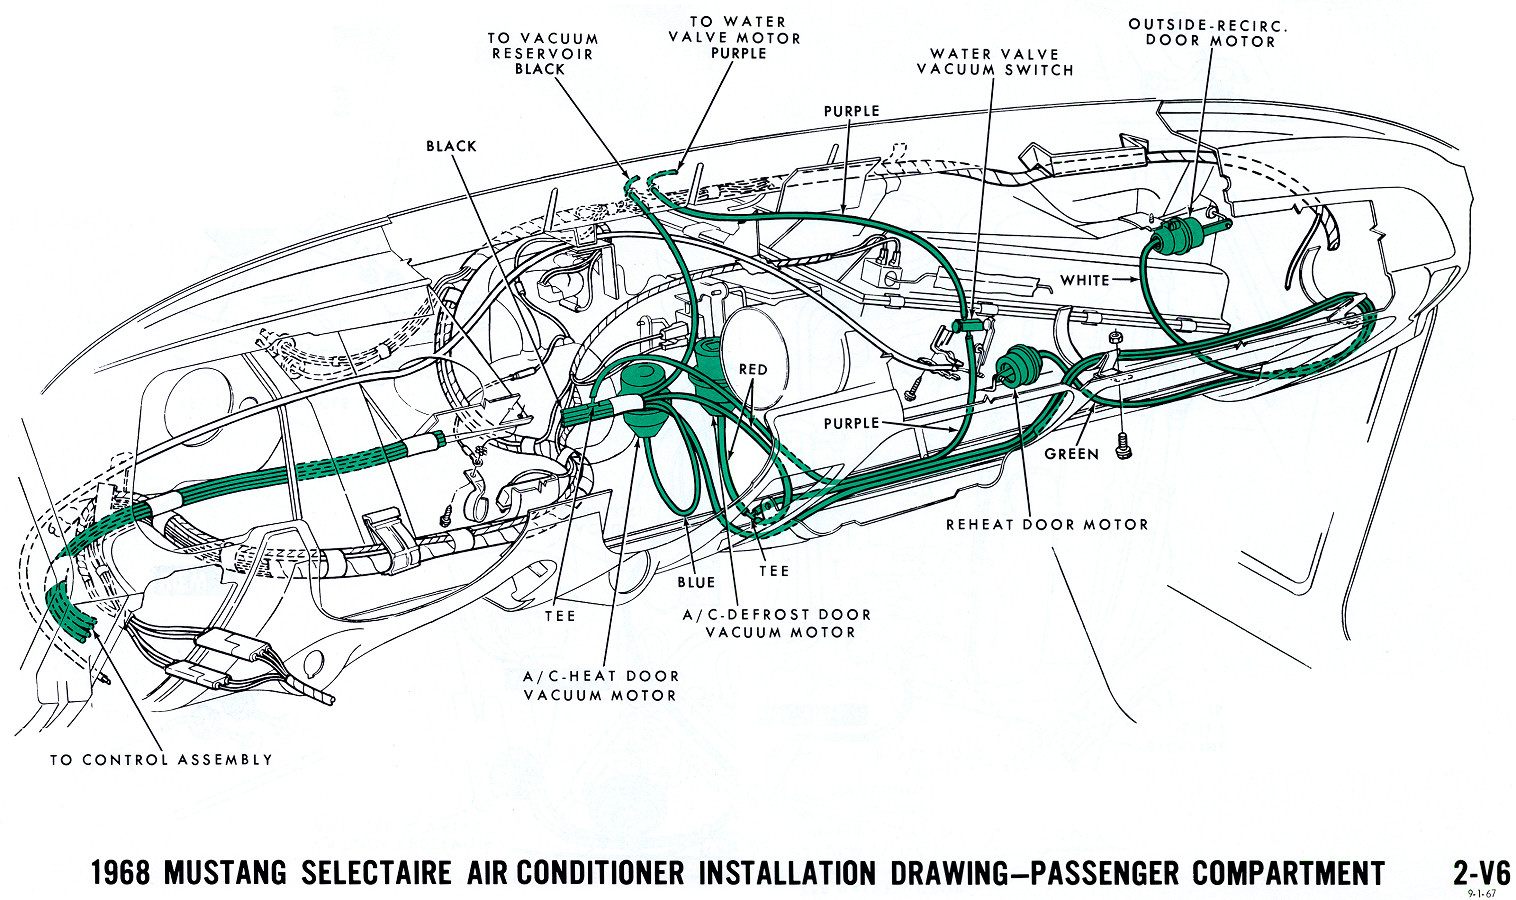 1968 mustang vacuum diagram air conditioning interior 1968 mustang wiring diagrams and vacuum schematics average joe GM Alternator Wiring Diagram at panicattacktreatment.co